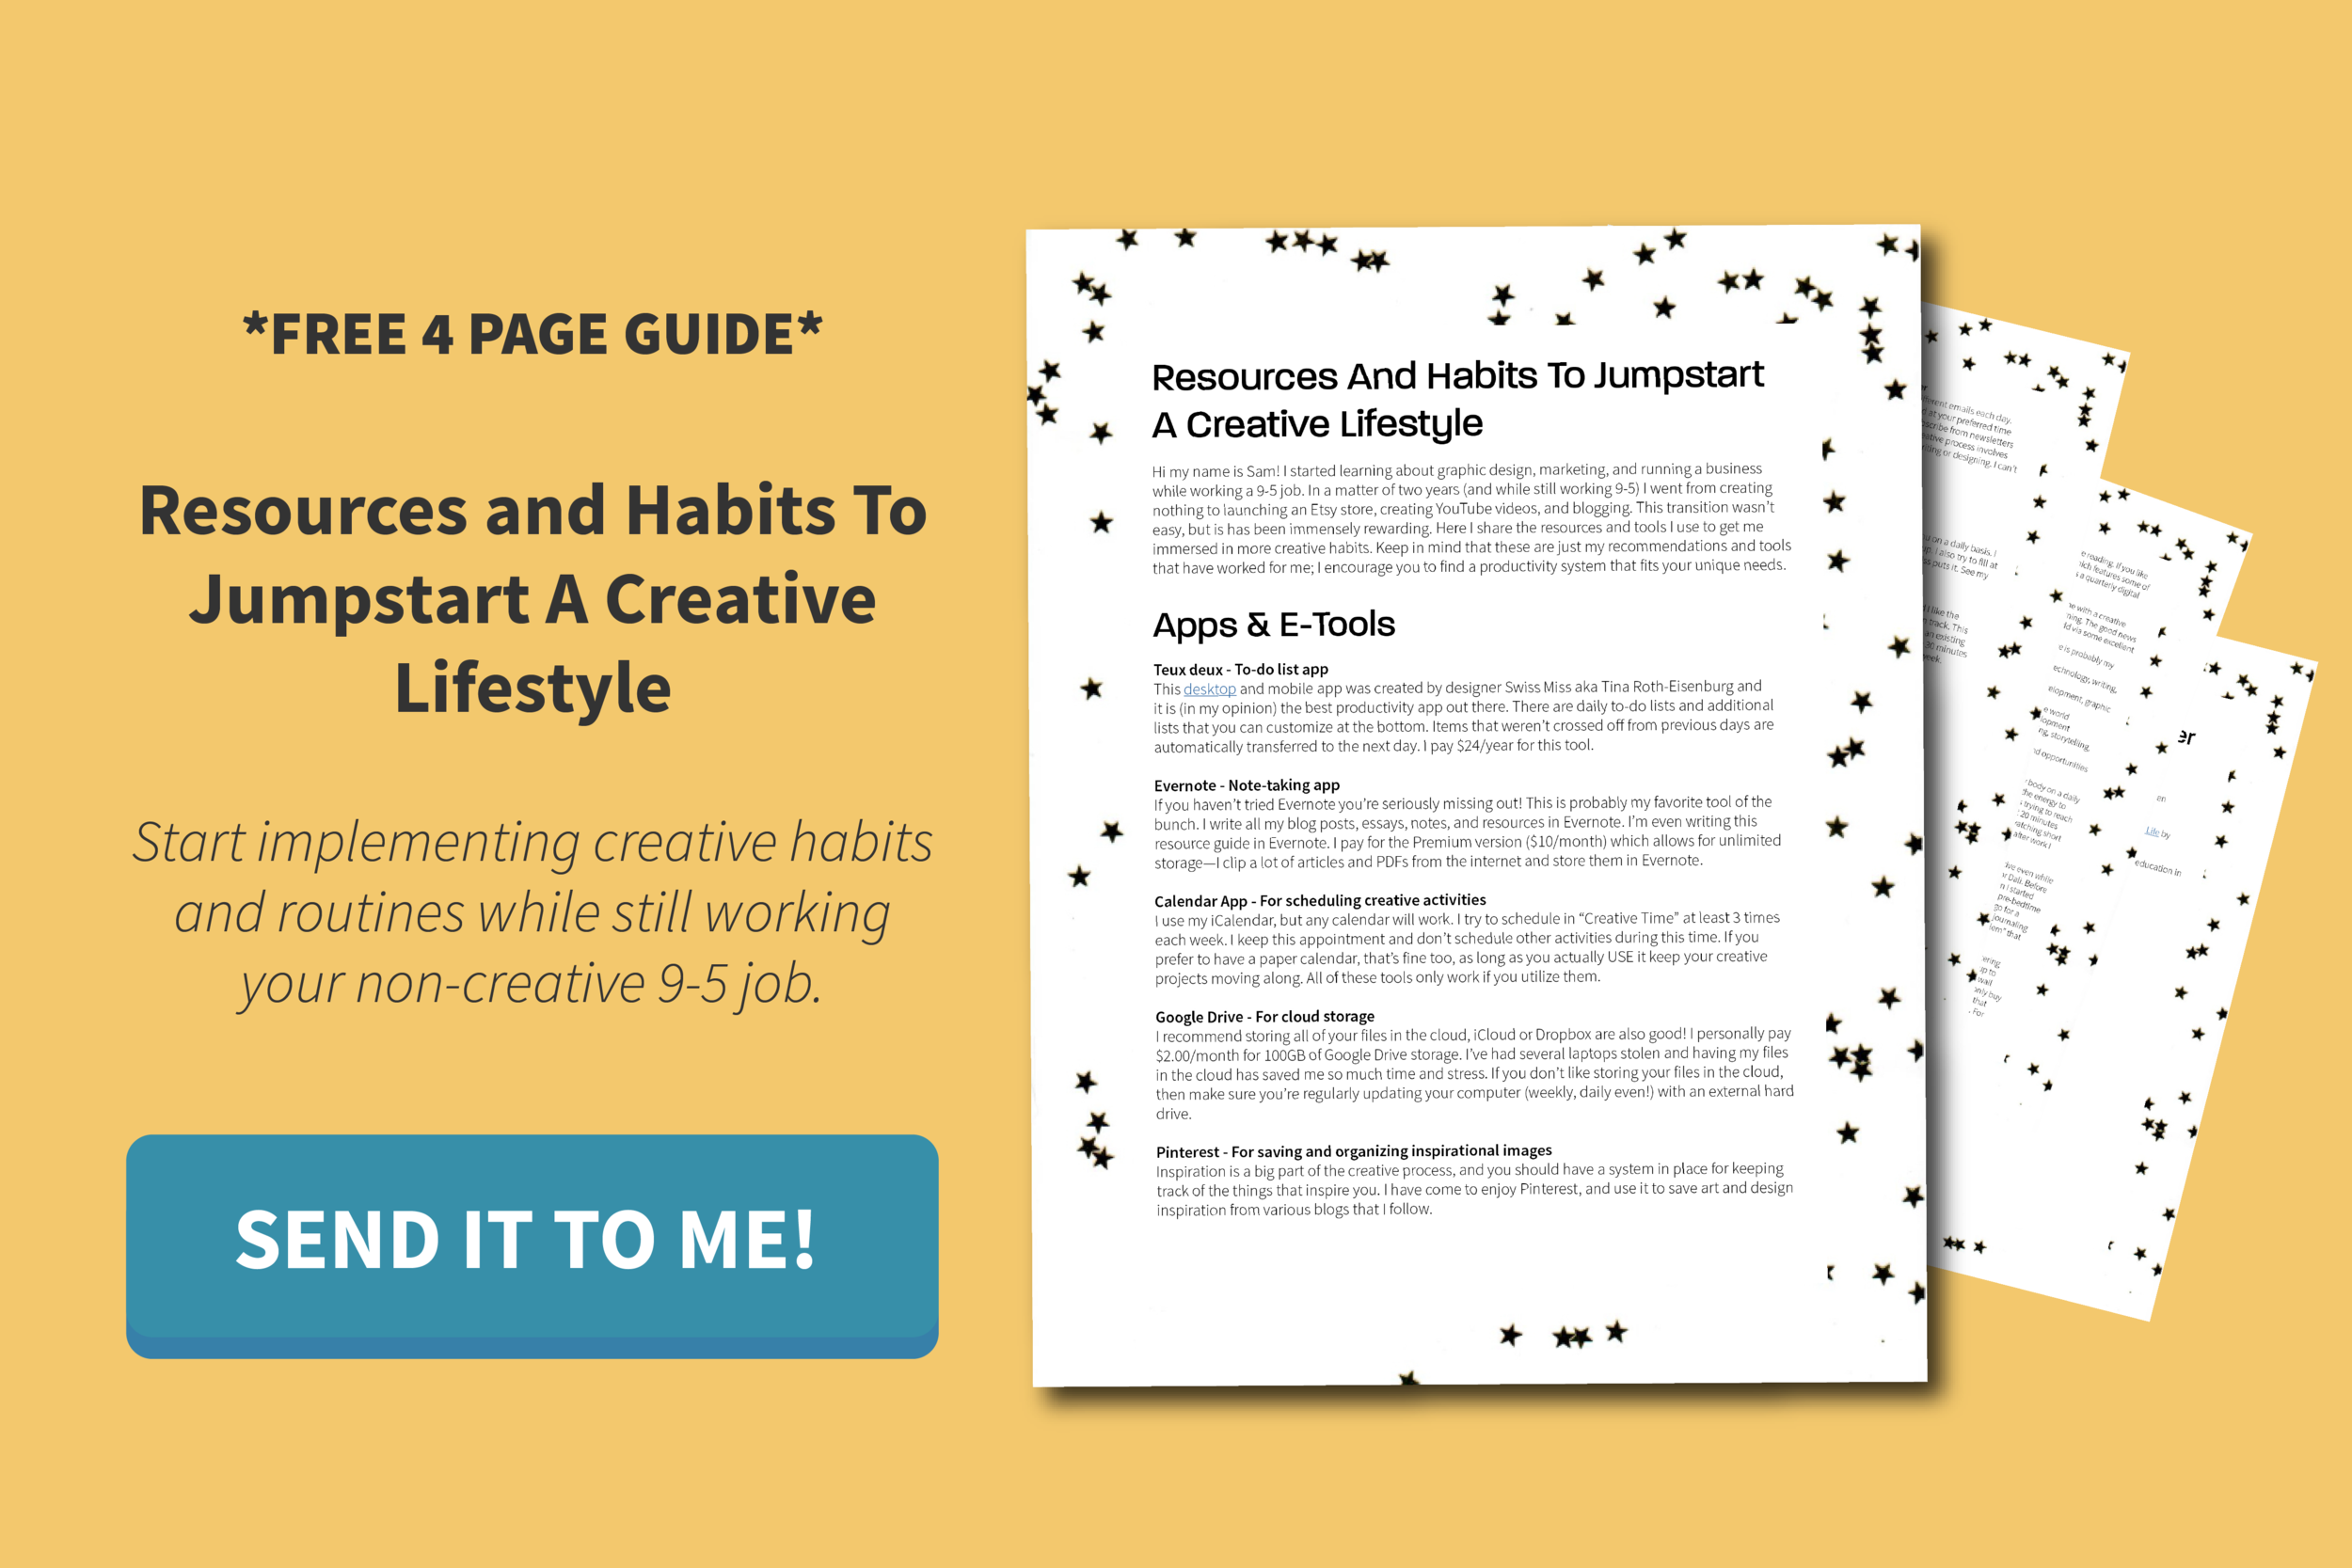 free four page creativity resource guide for working 9-5 jobs